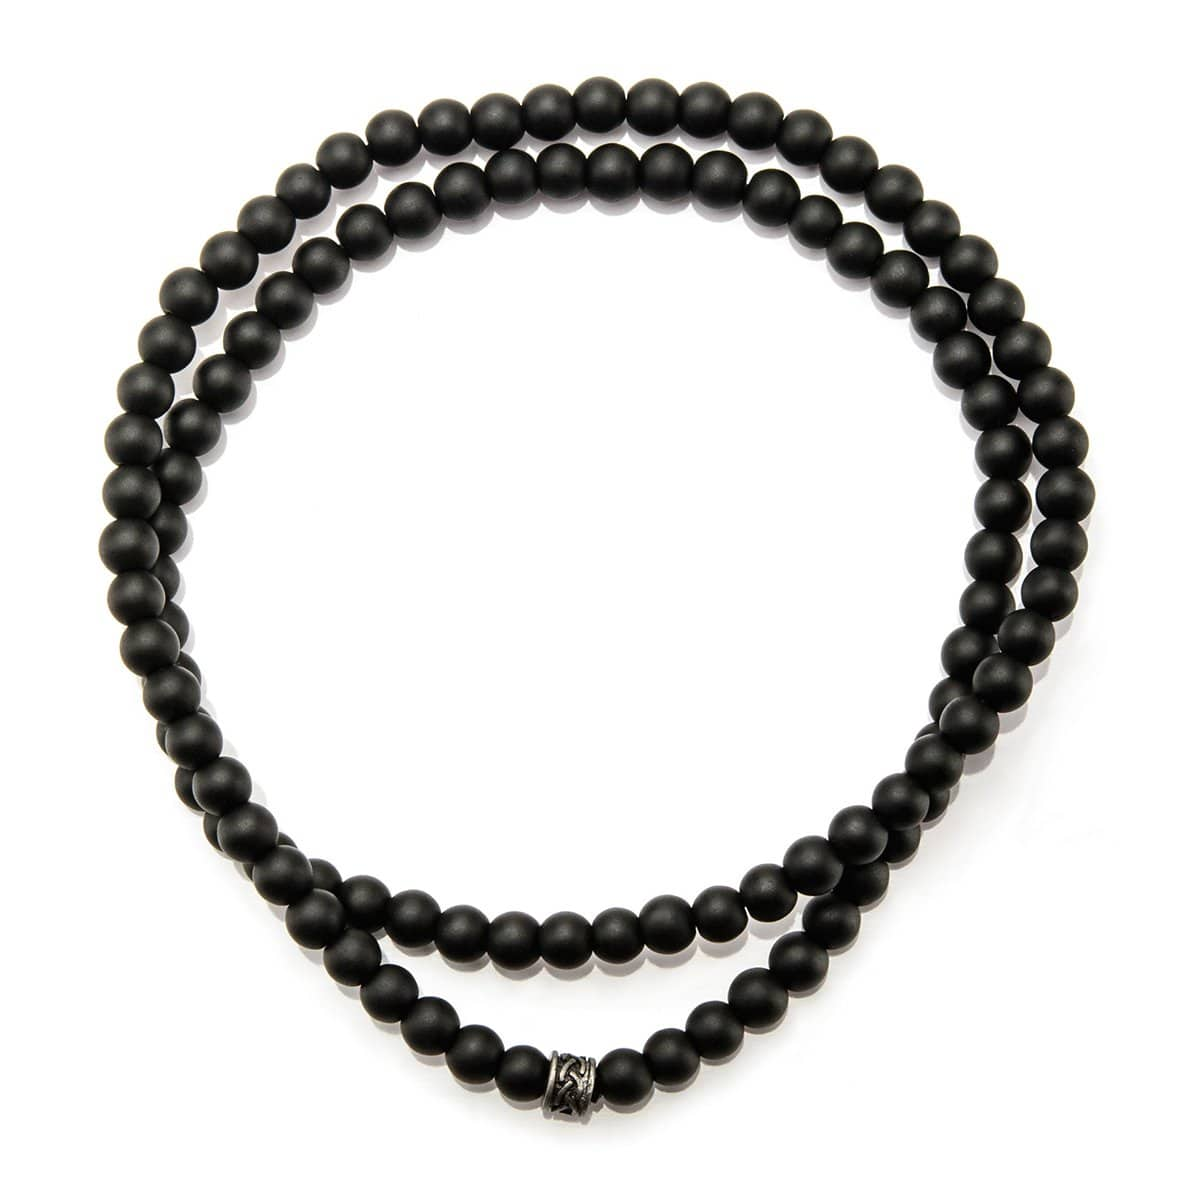 Darkened Silver with Black Onyx Stone Bead Intertwined Stackable Bracelet